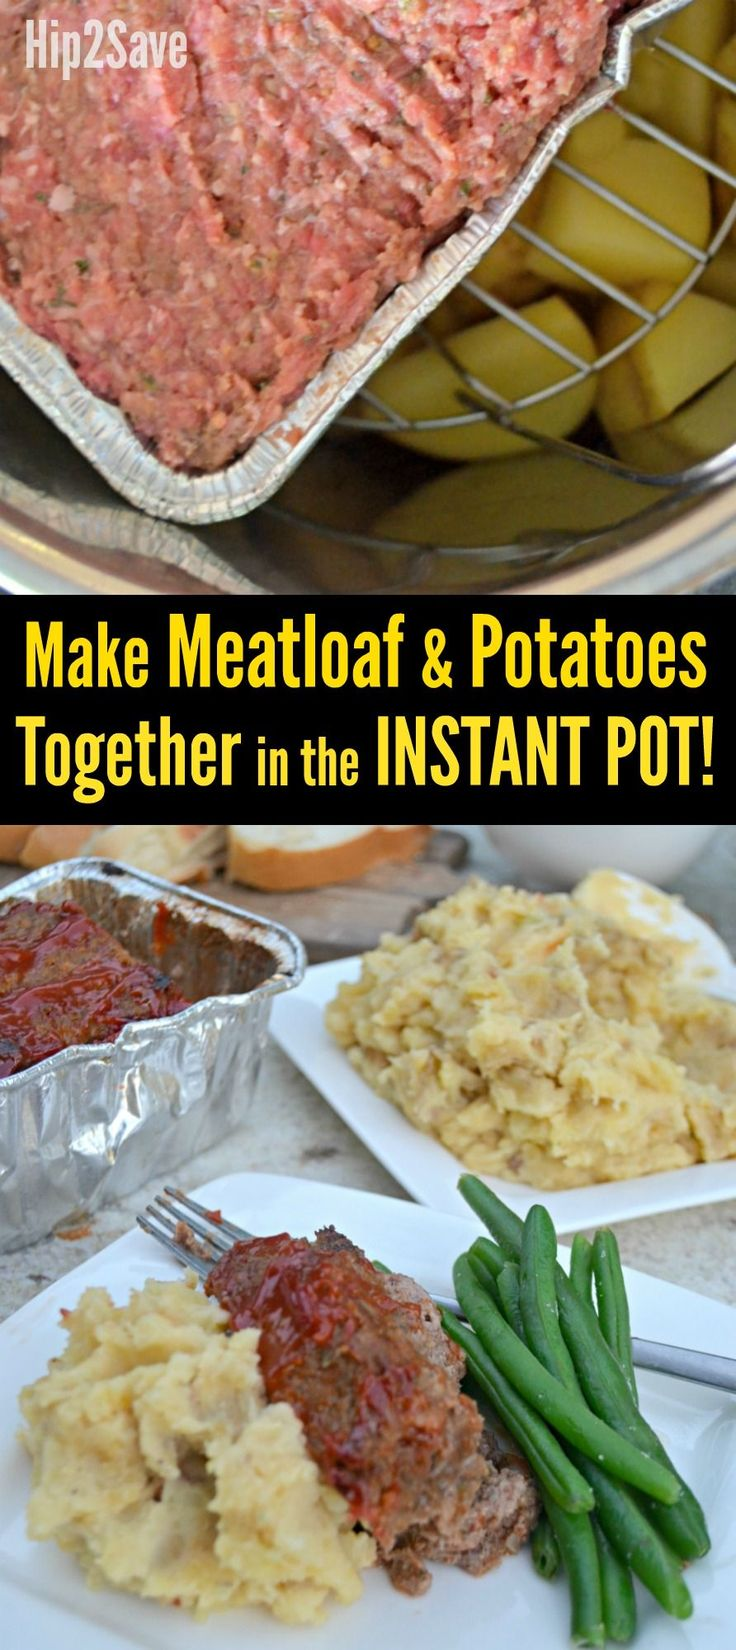 Here's how to make Instant Pot Meatloaf and Mashed Potatoes together as a comforting and convenient one pot meal the entire family will love!